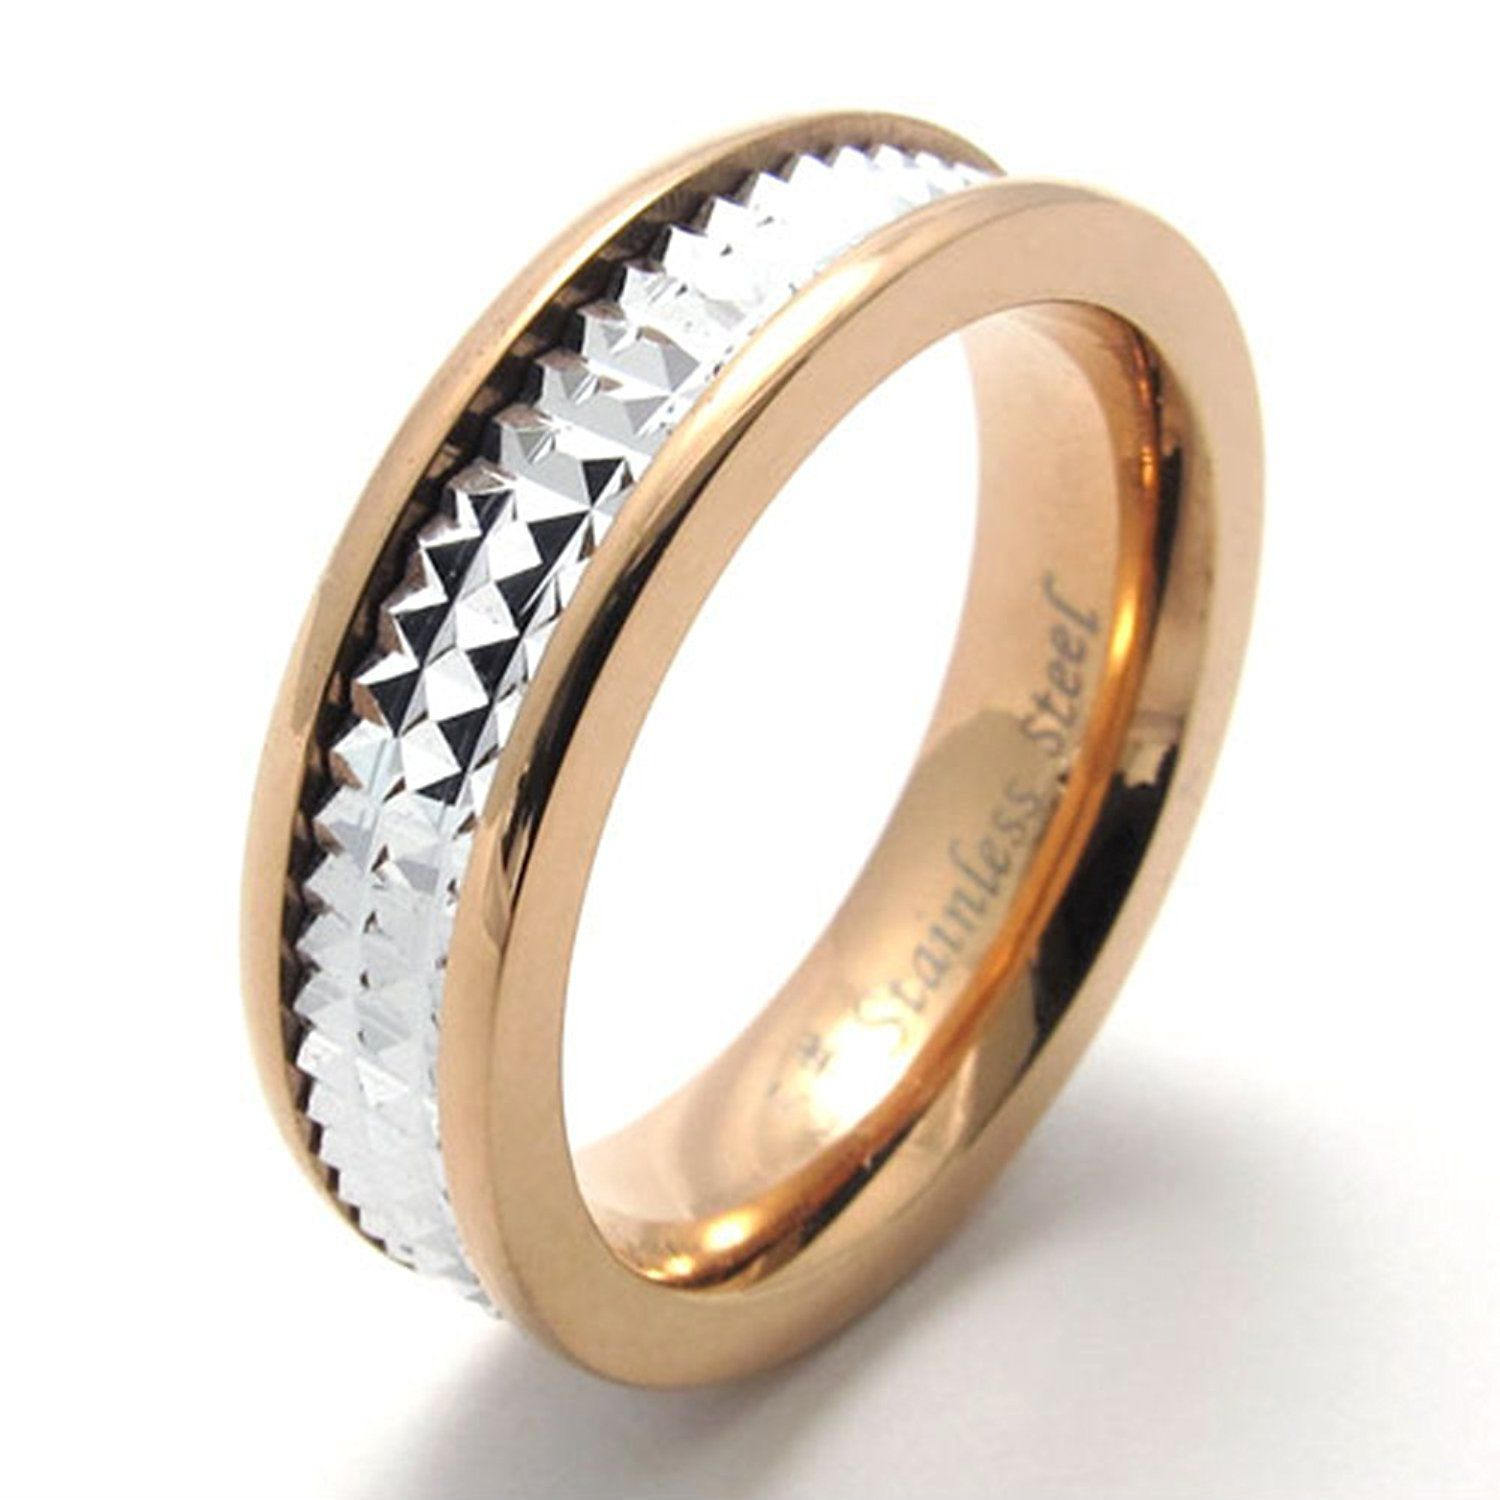 TEMEGO Jewelry Mens Womens Stainless Steel 2Tone Convex